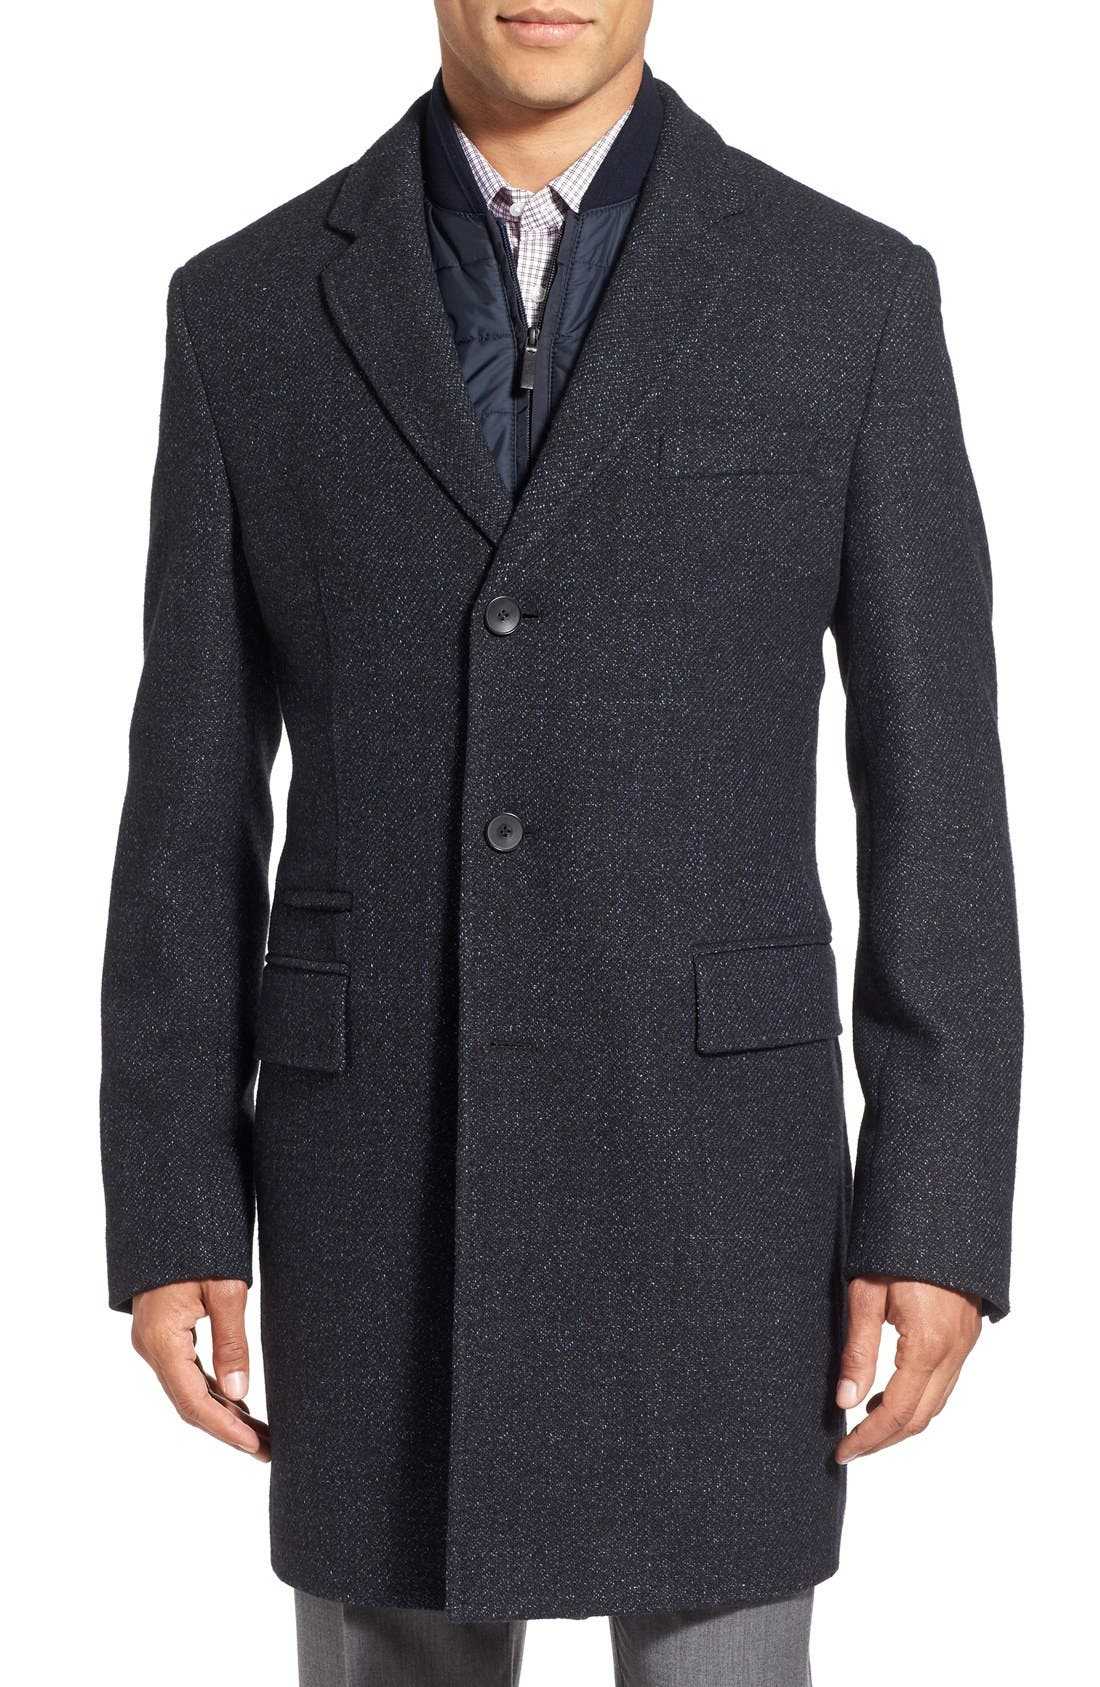 Alternate Image 1 Selected - BOSS 'Nadim' Wool Blend Overcoat